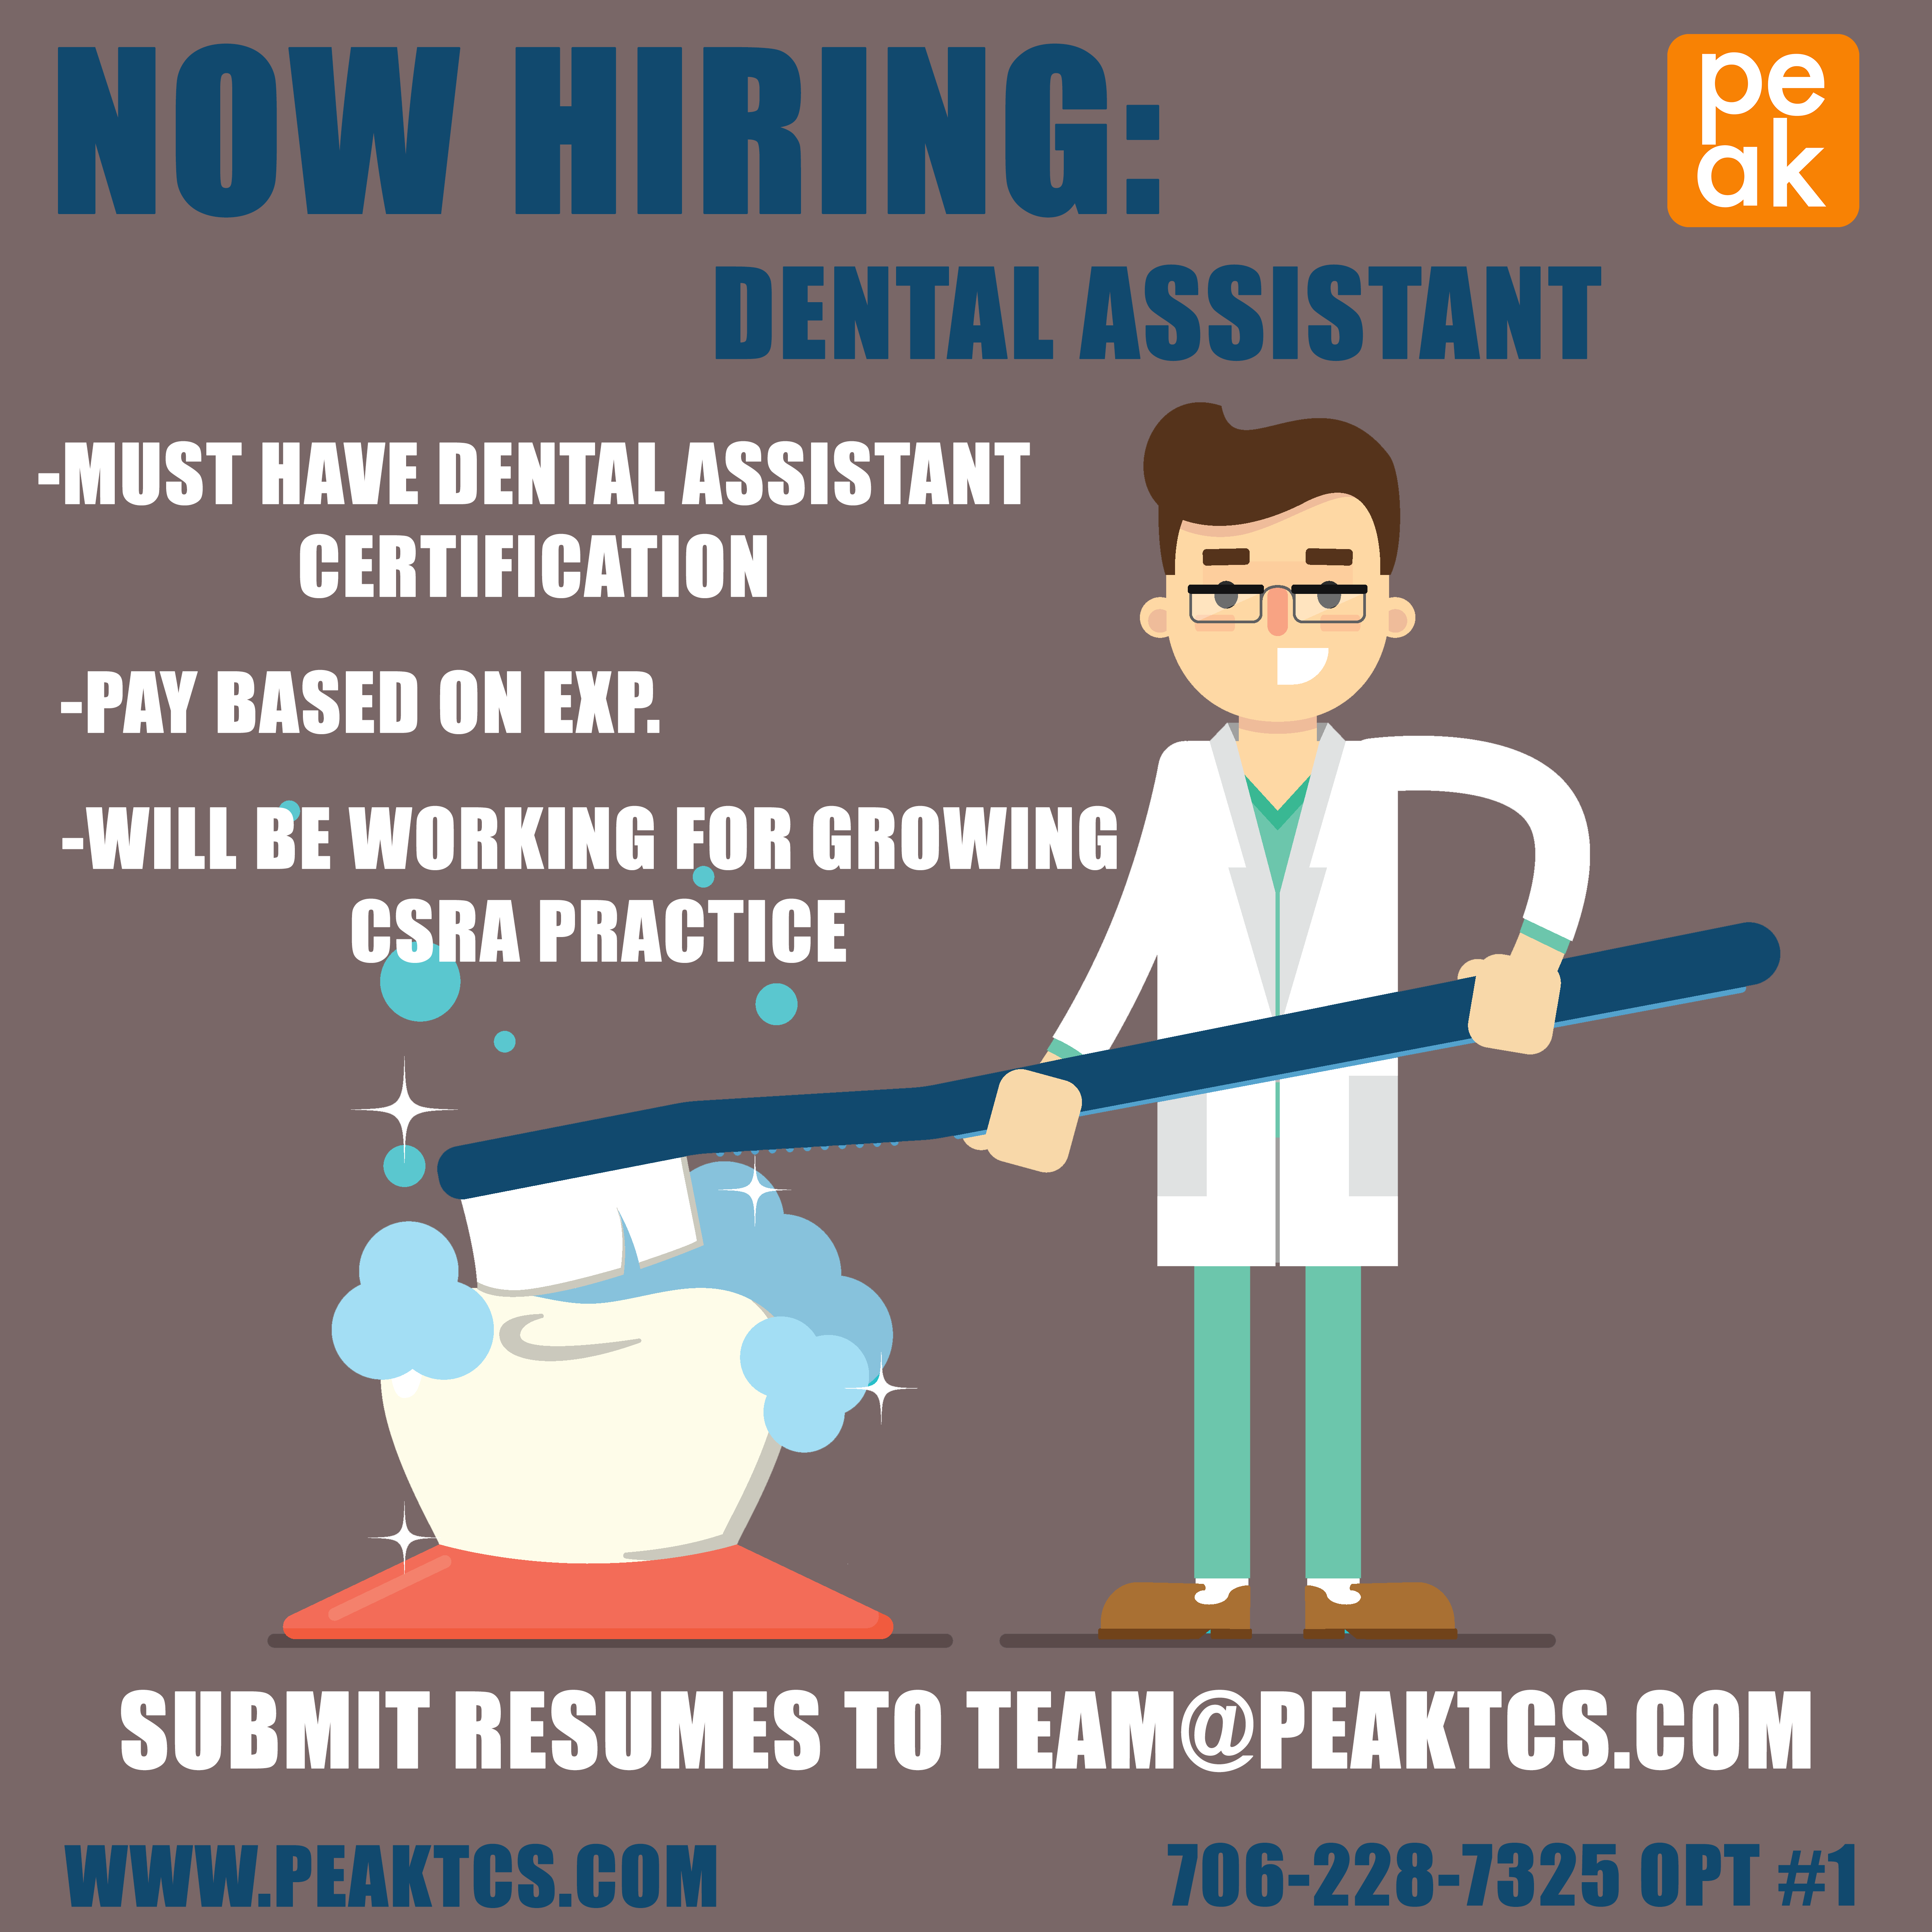 We Are Now Hiring For Dental Assistants Apply At Www Peaktcs Com